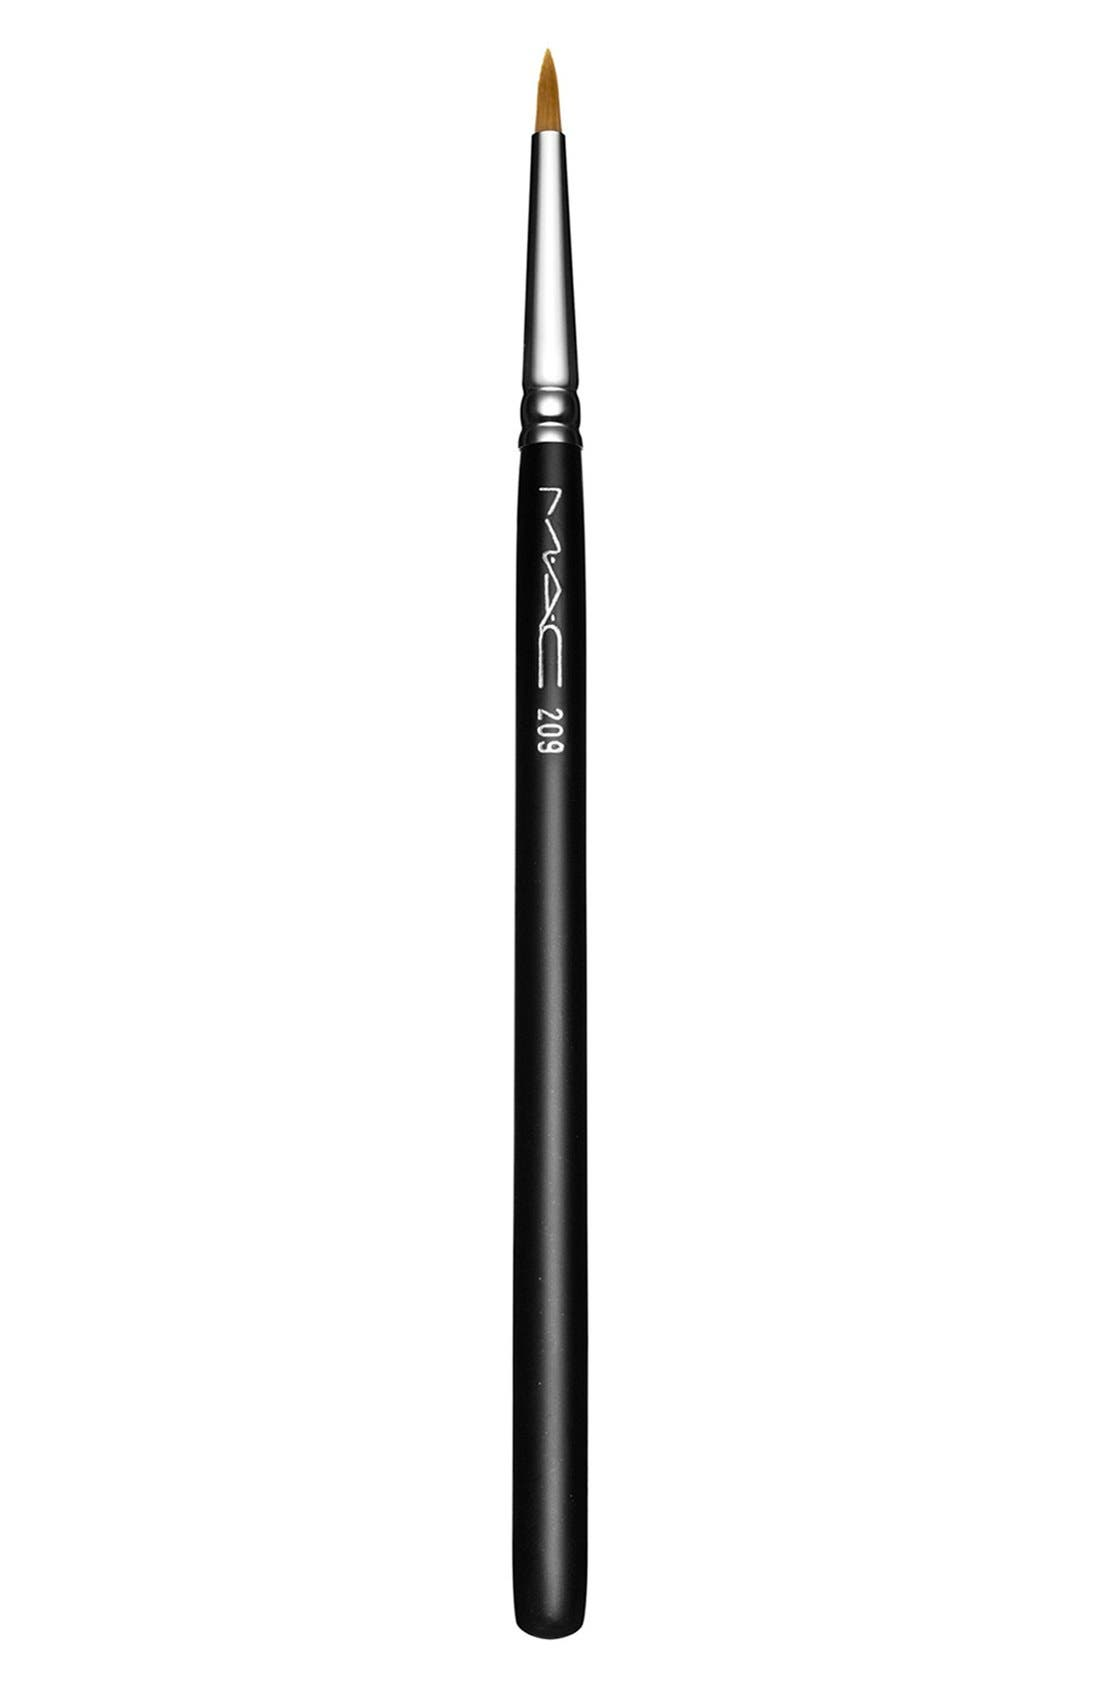 MAC 209 Eyeliner Brush,                         Main,                         color, 000